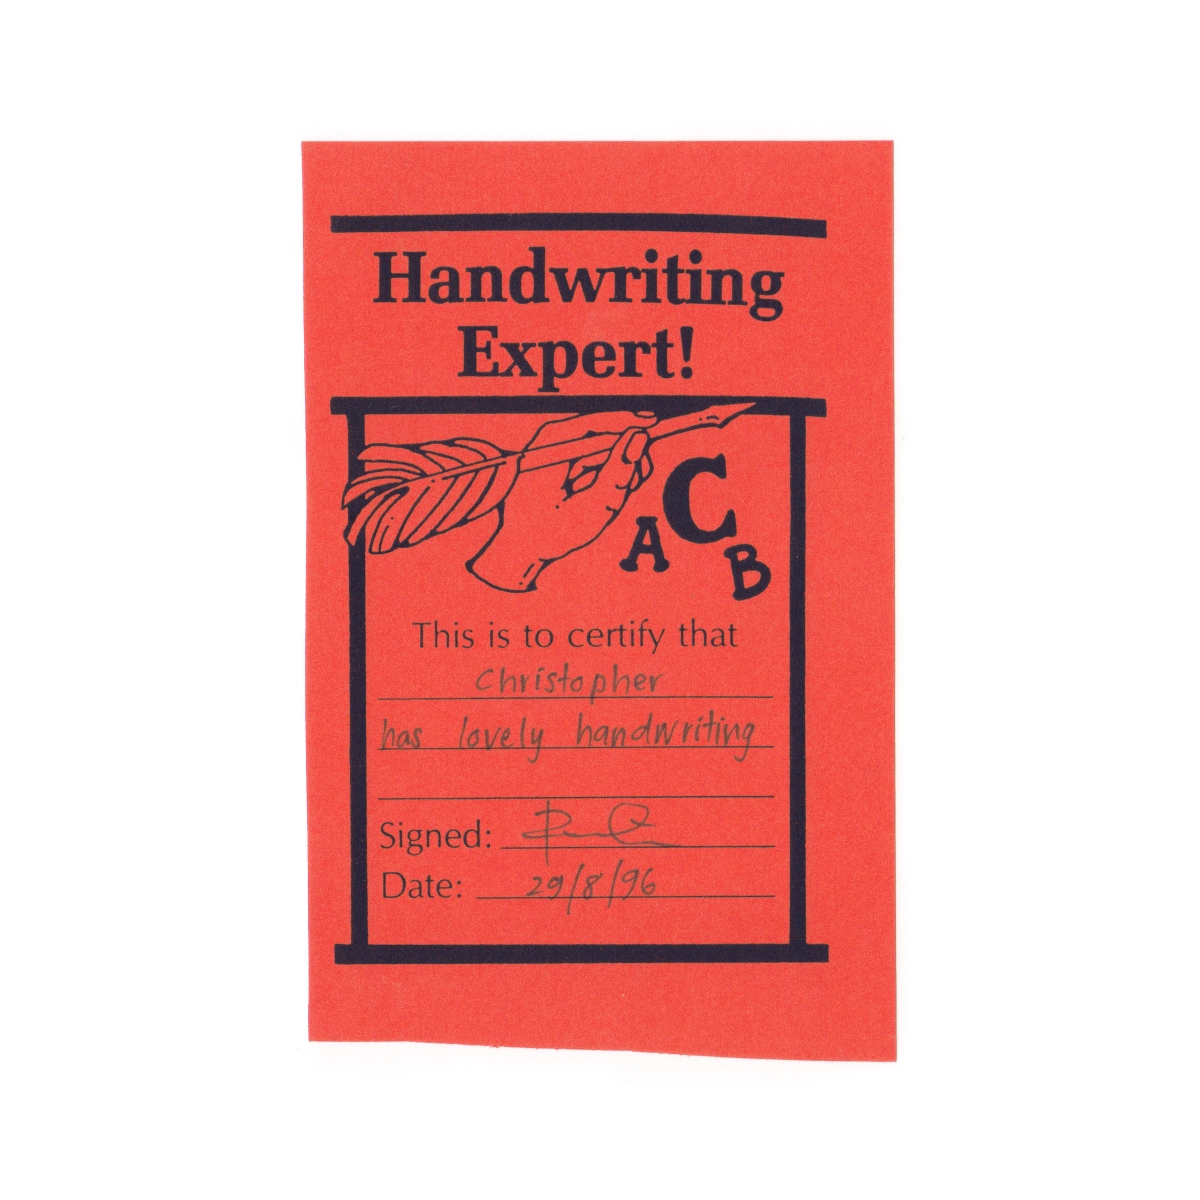 Handwriting expert certificate.